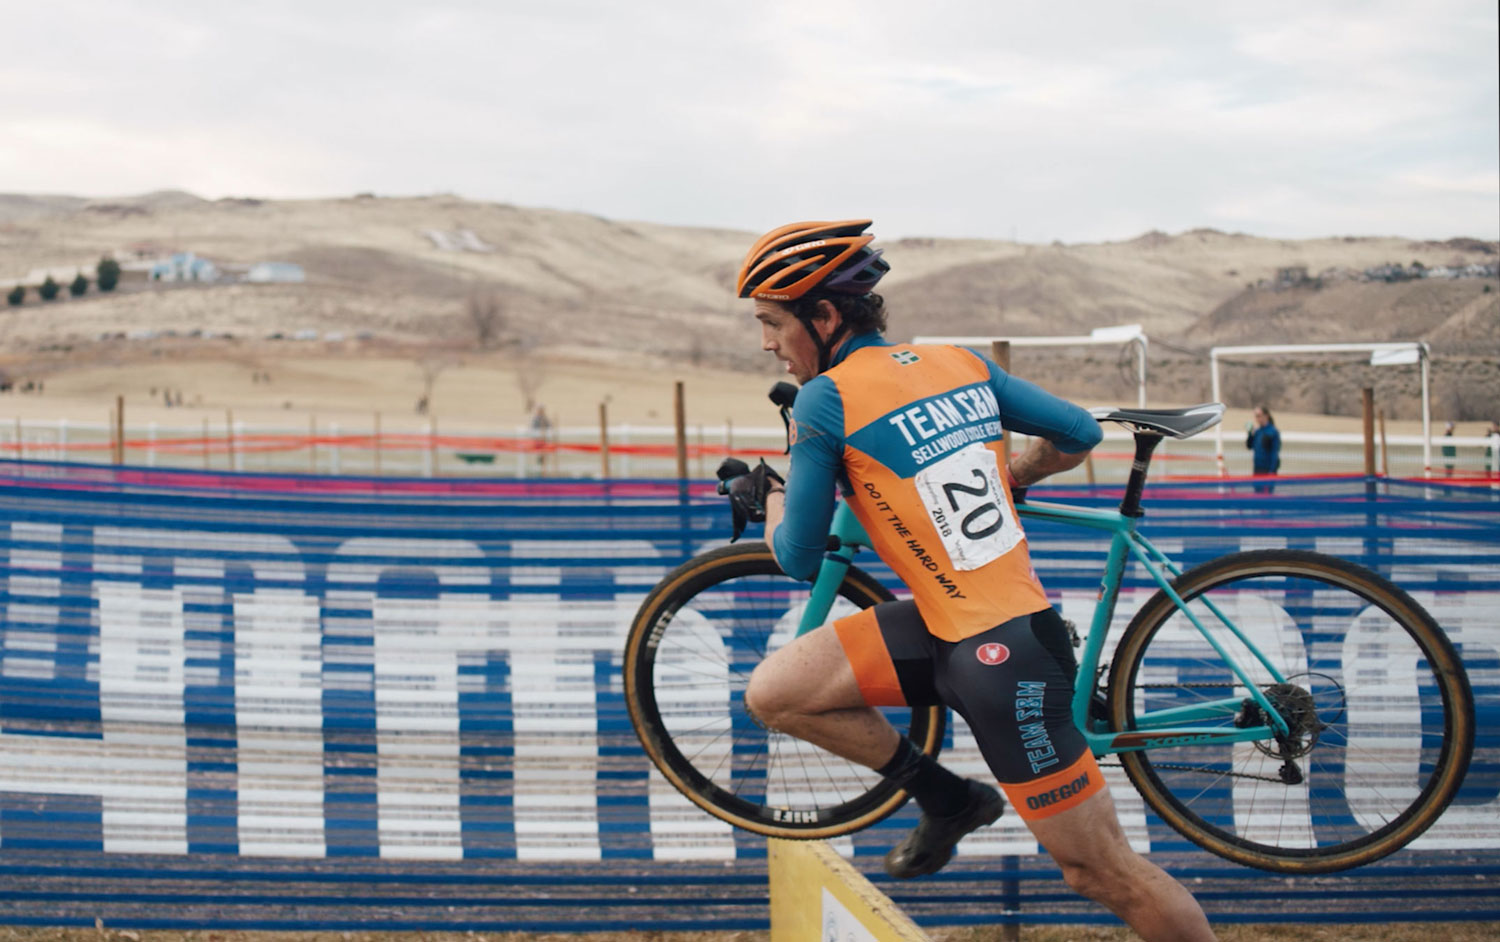 state of cyclocross screening party pine mountain bend oregon